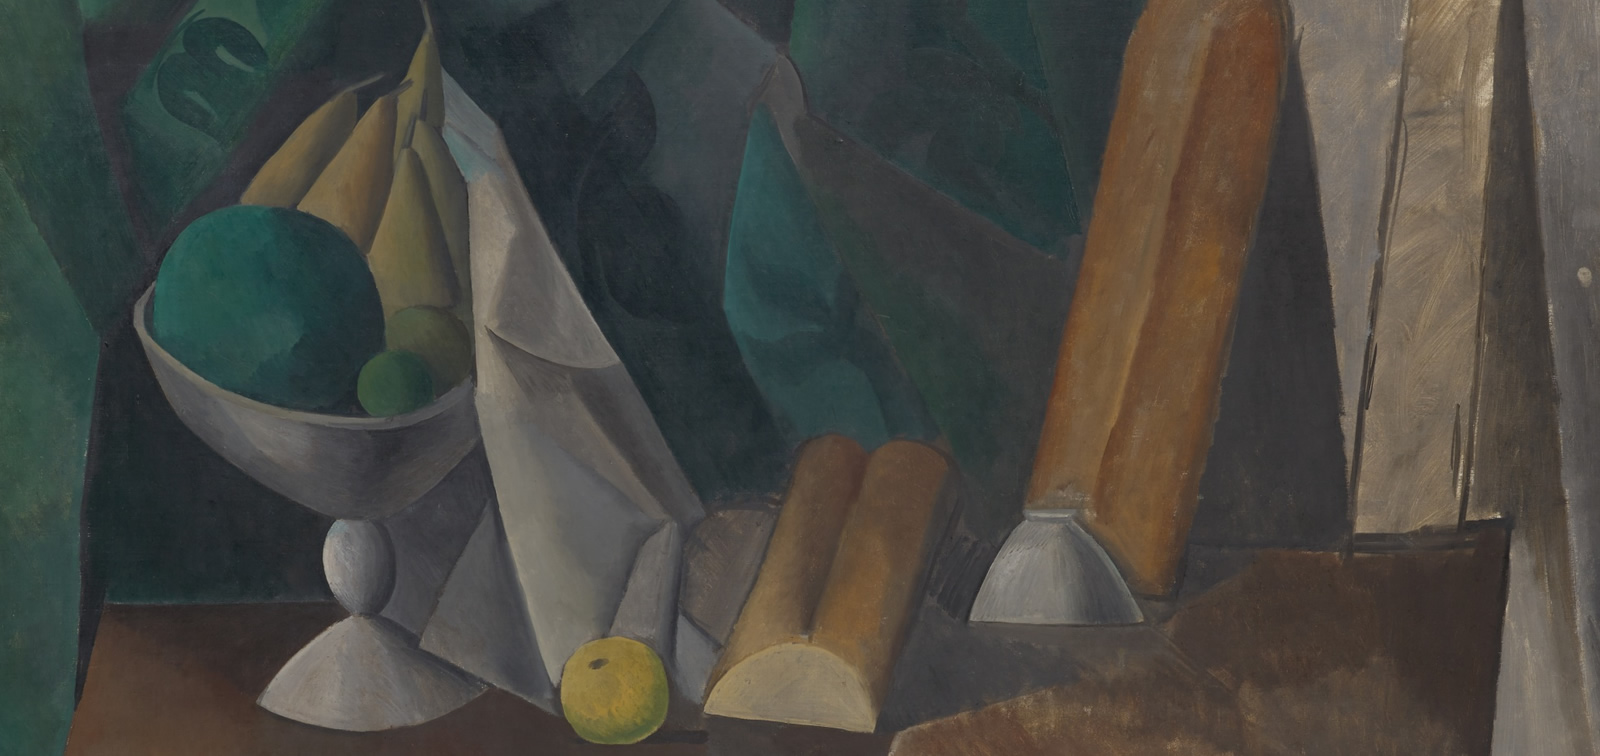 Ten Picassos from the Kunstmuseum Basel